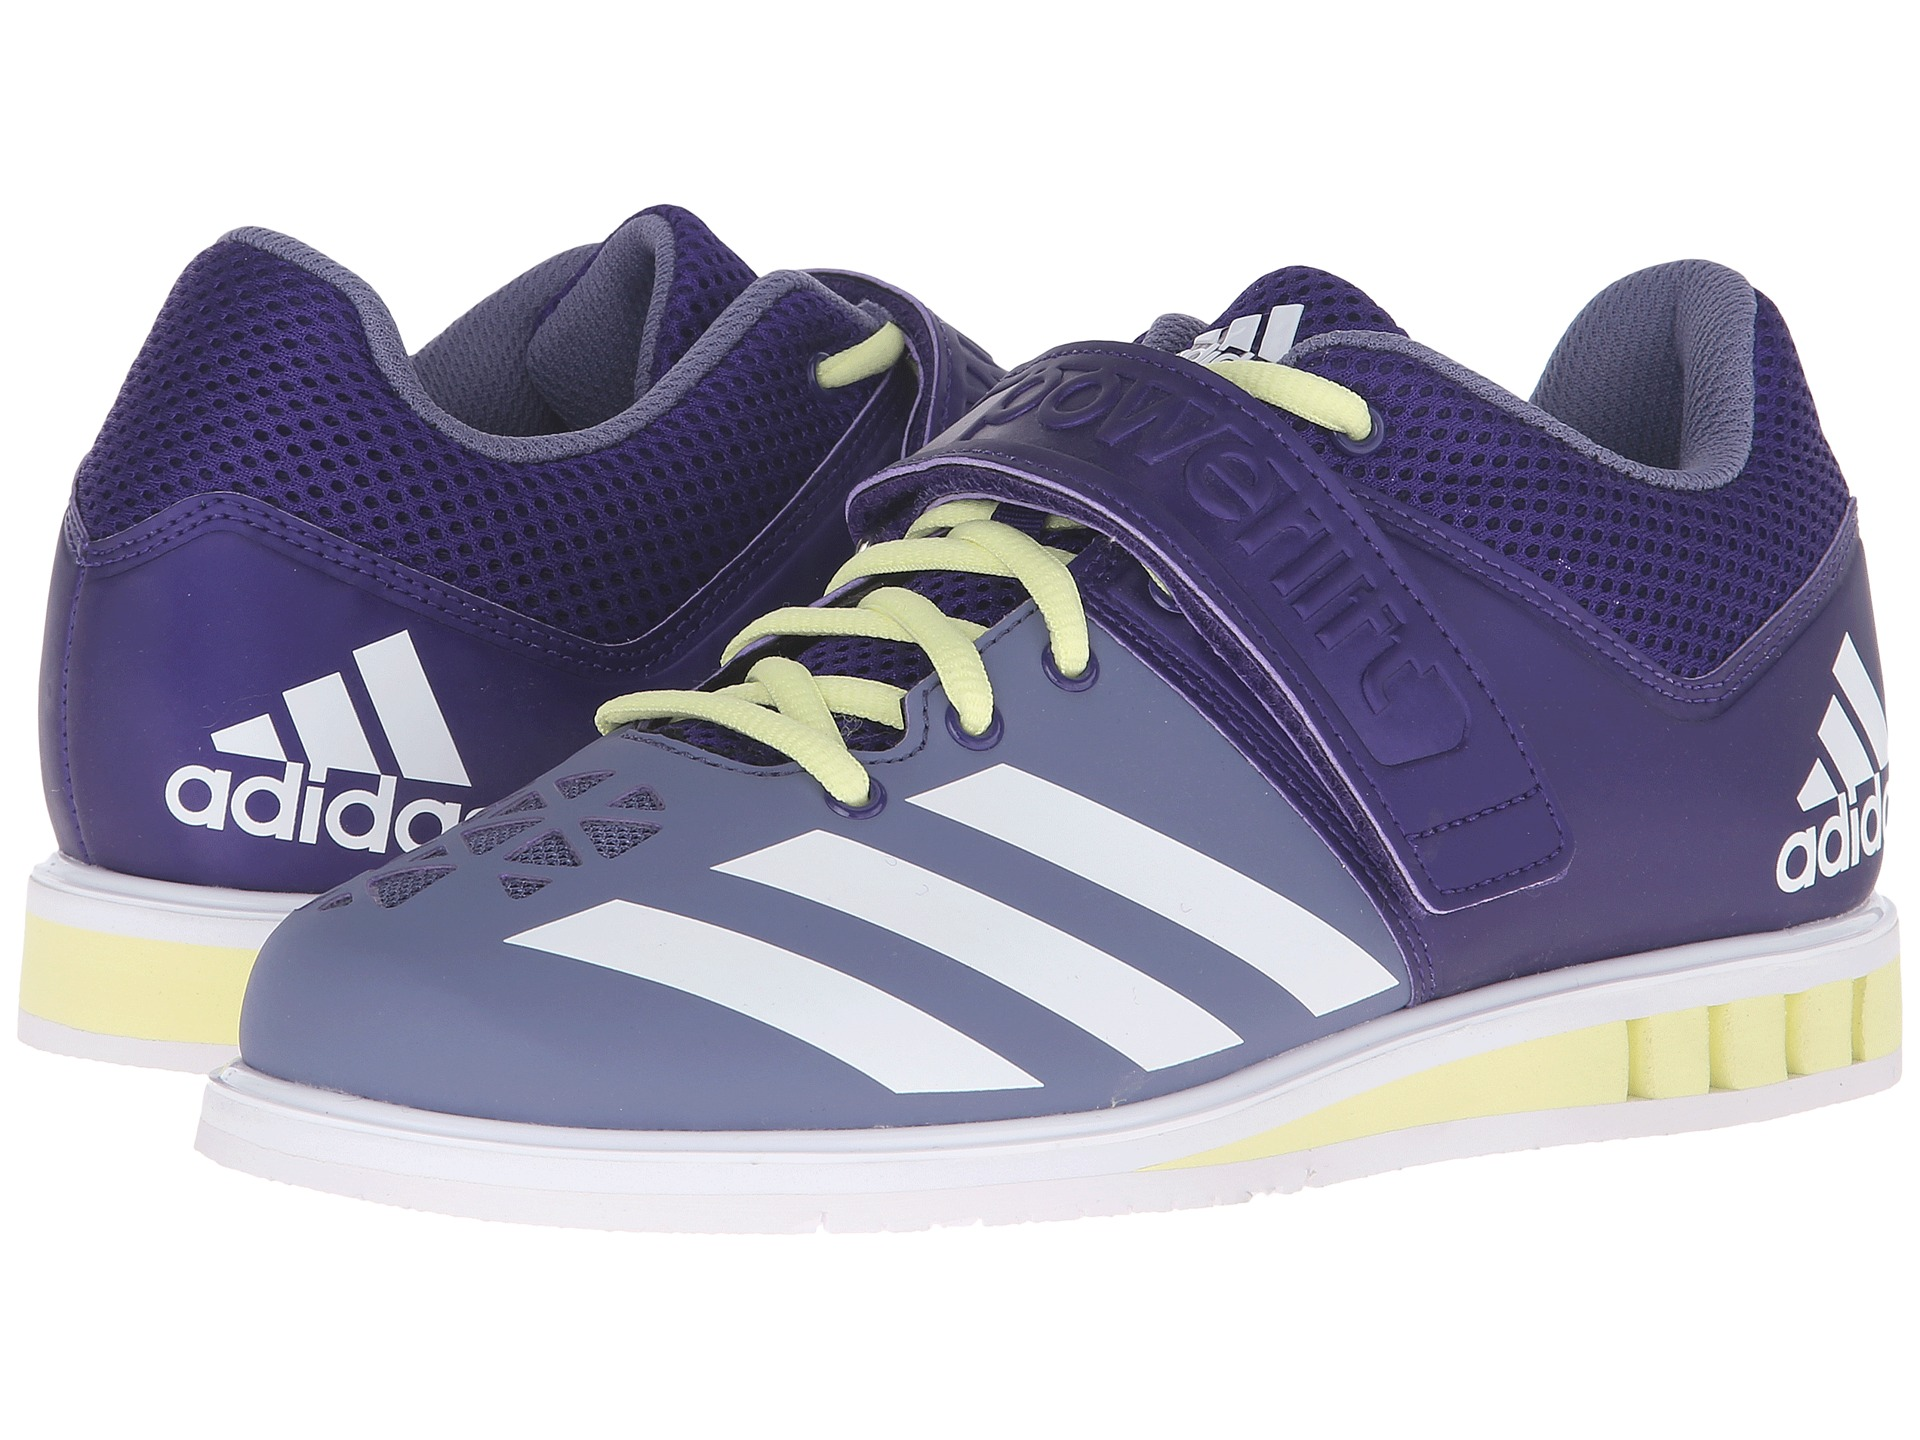 adidas power lift